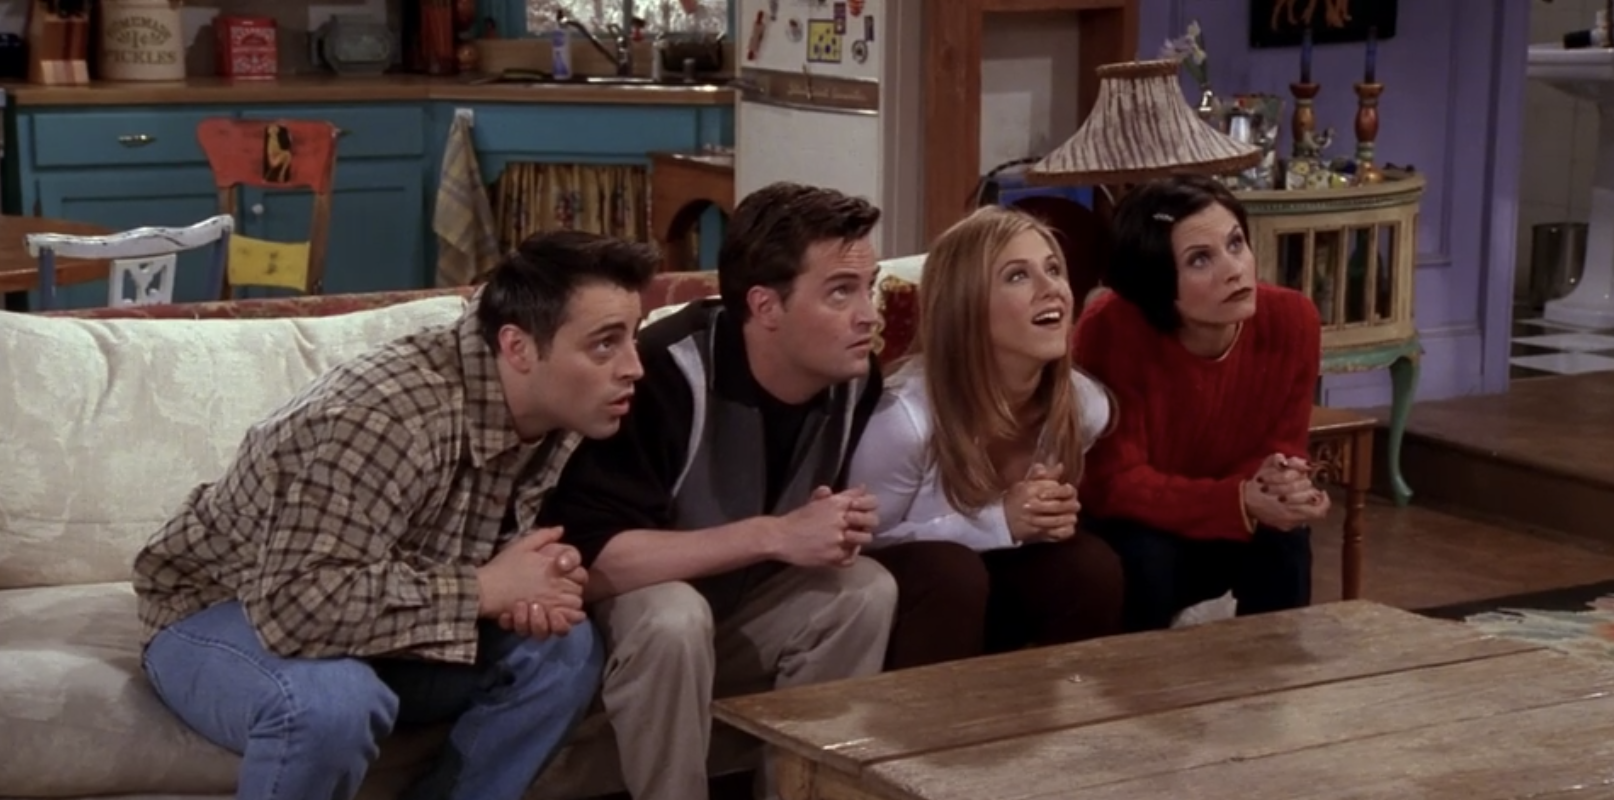 Joey, Chandler, Rachel, and Monica stare blankly at Ross